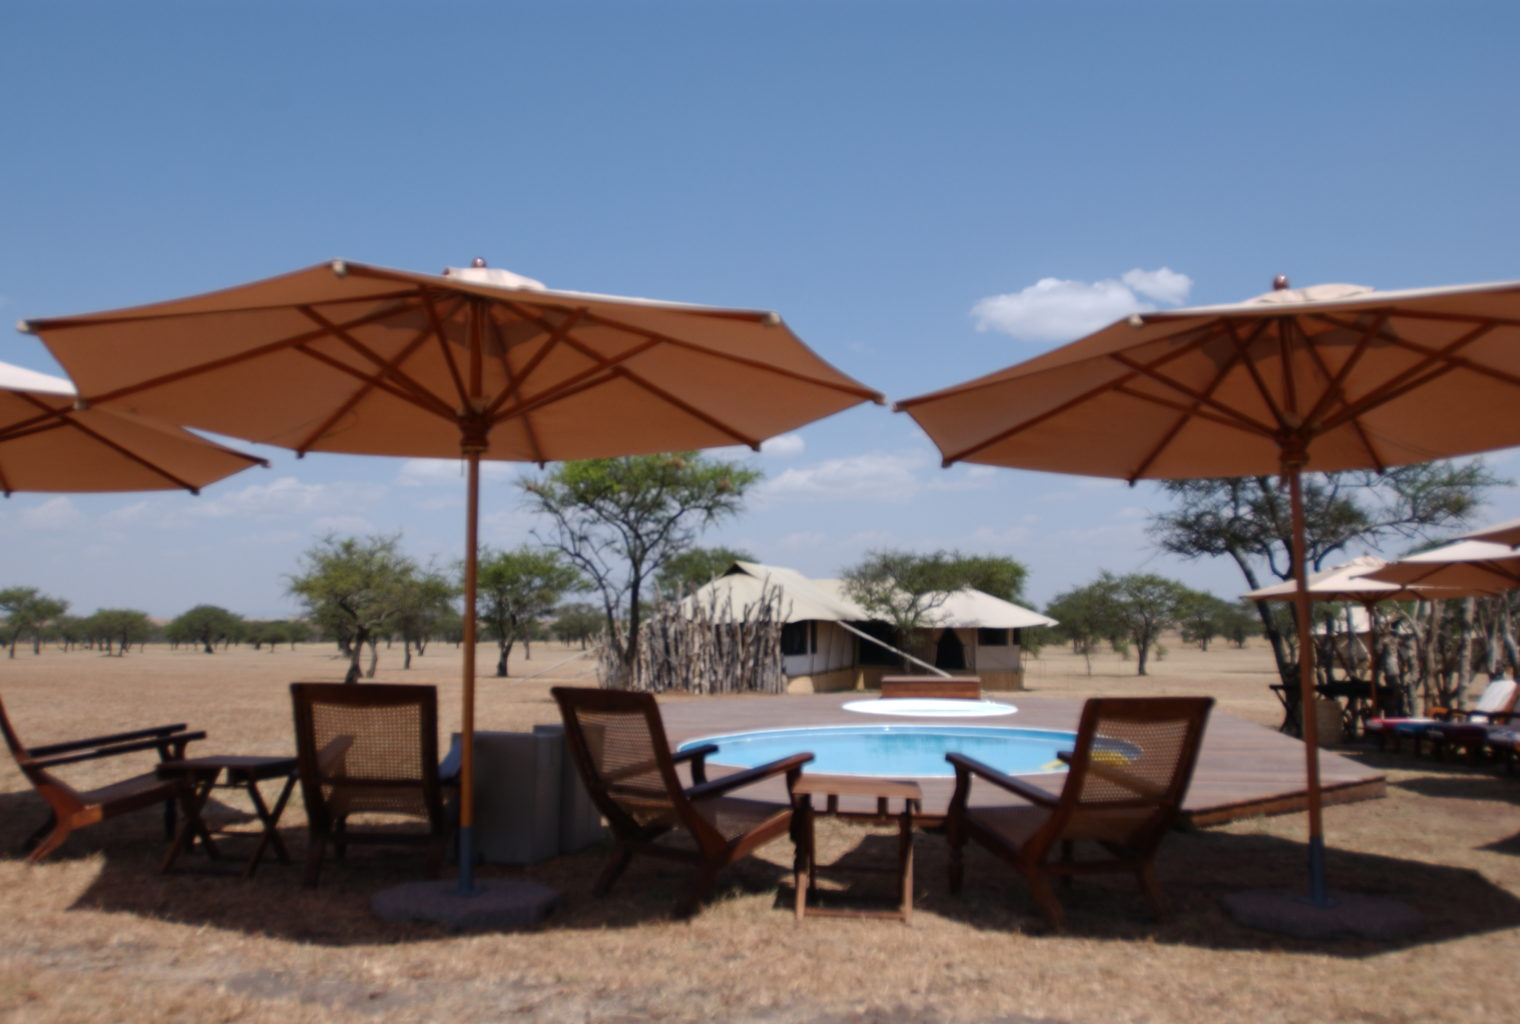 Sabora Tented Camp Pool